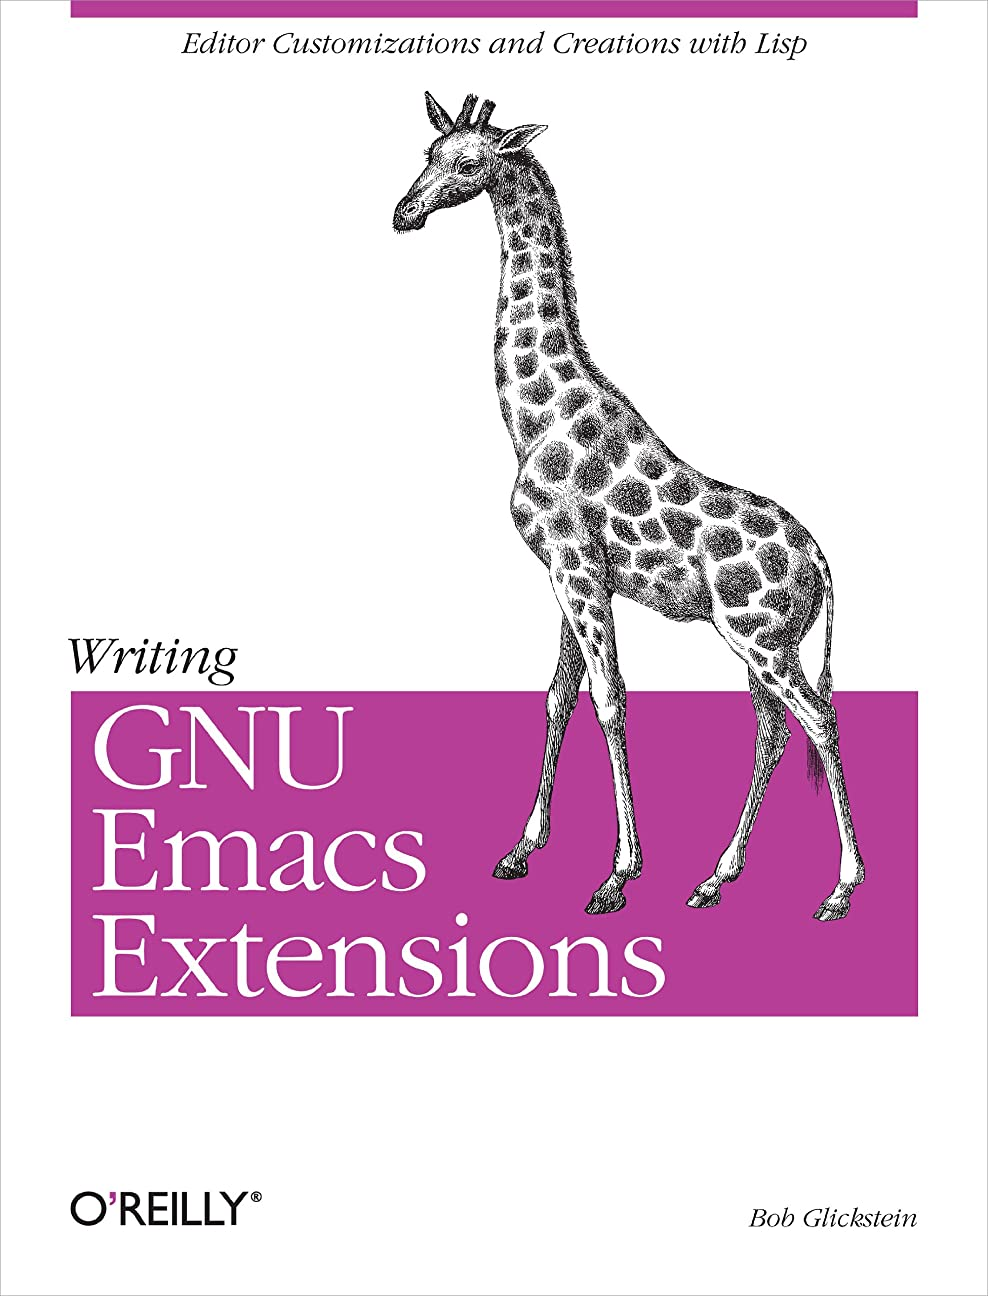 ファンネルウェブスパイダー礼儀分泌するWriting GNU Emacs Extensions: Editor Customizations and Creations with Lisp (Nutshell Handbooks) (English Edition)